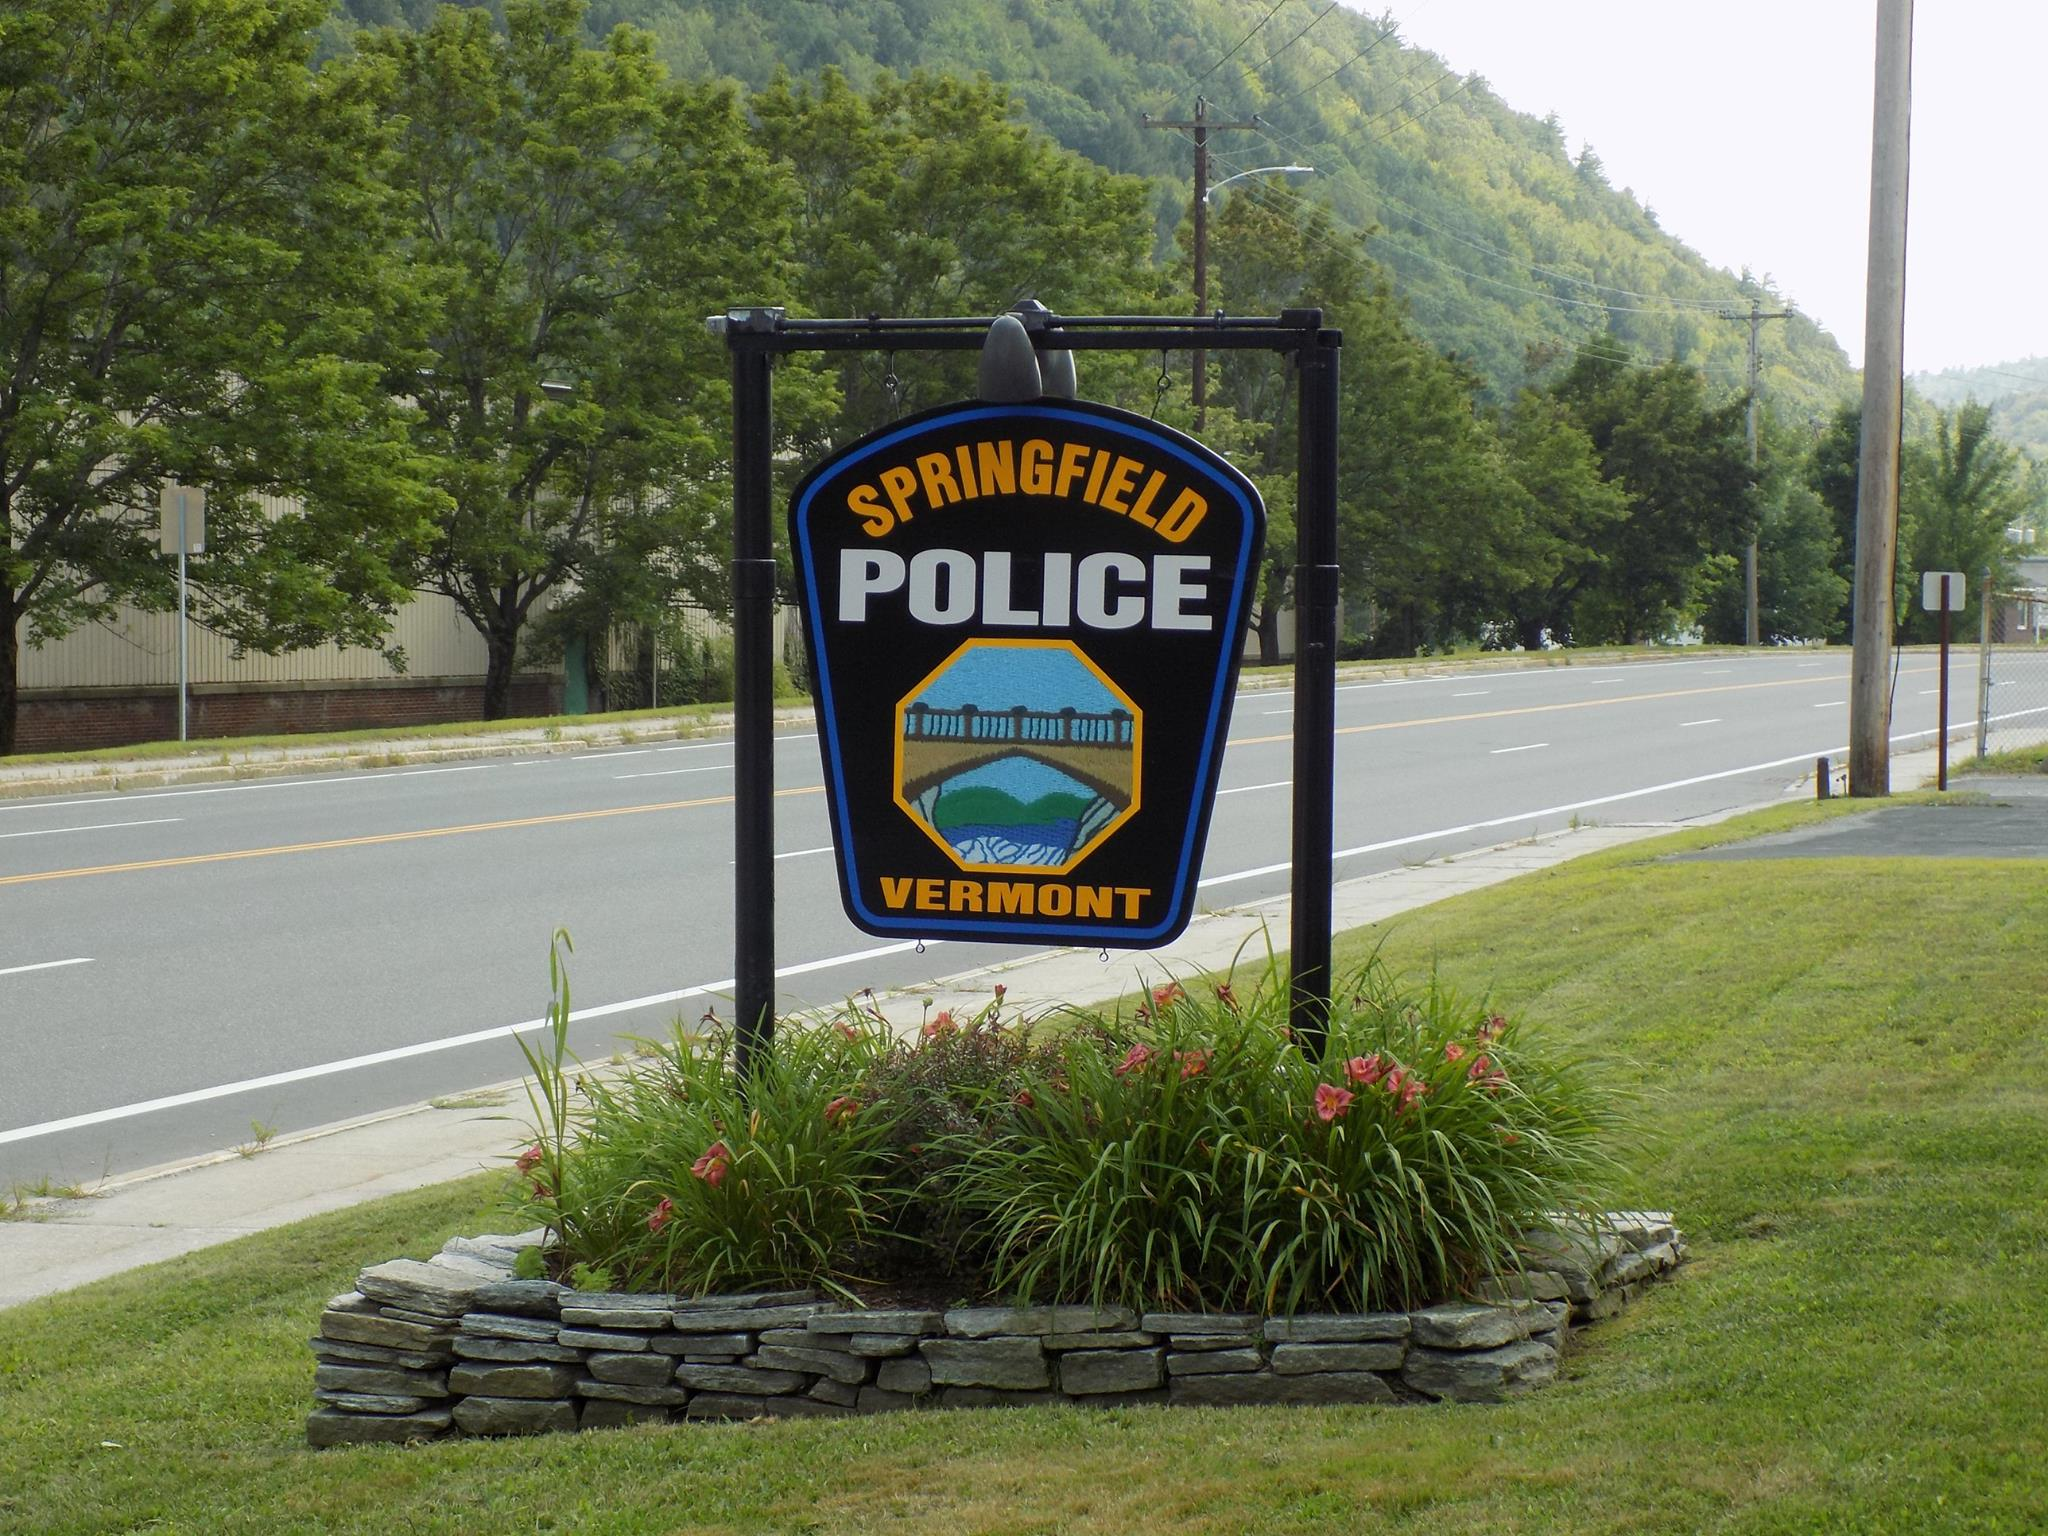 Springfield Police Department, VT